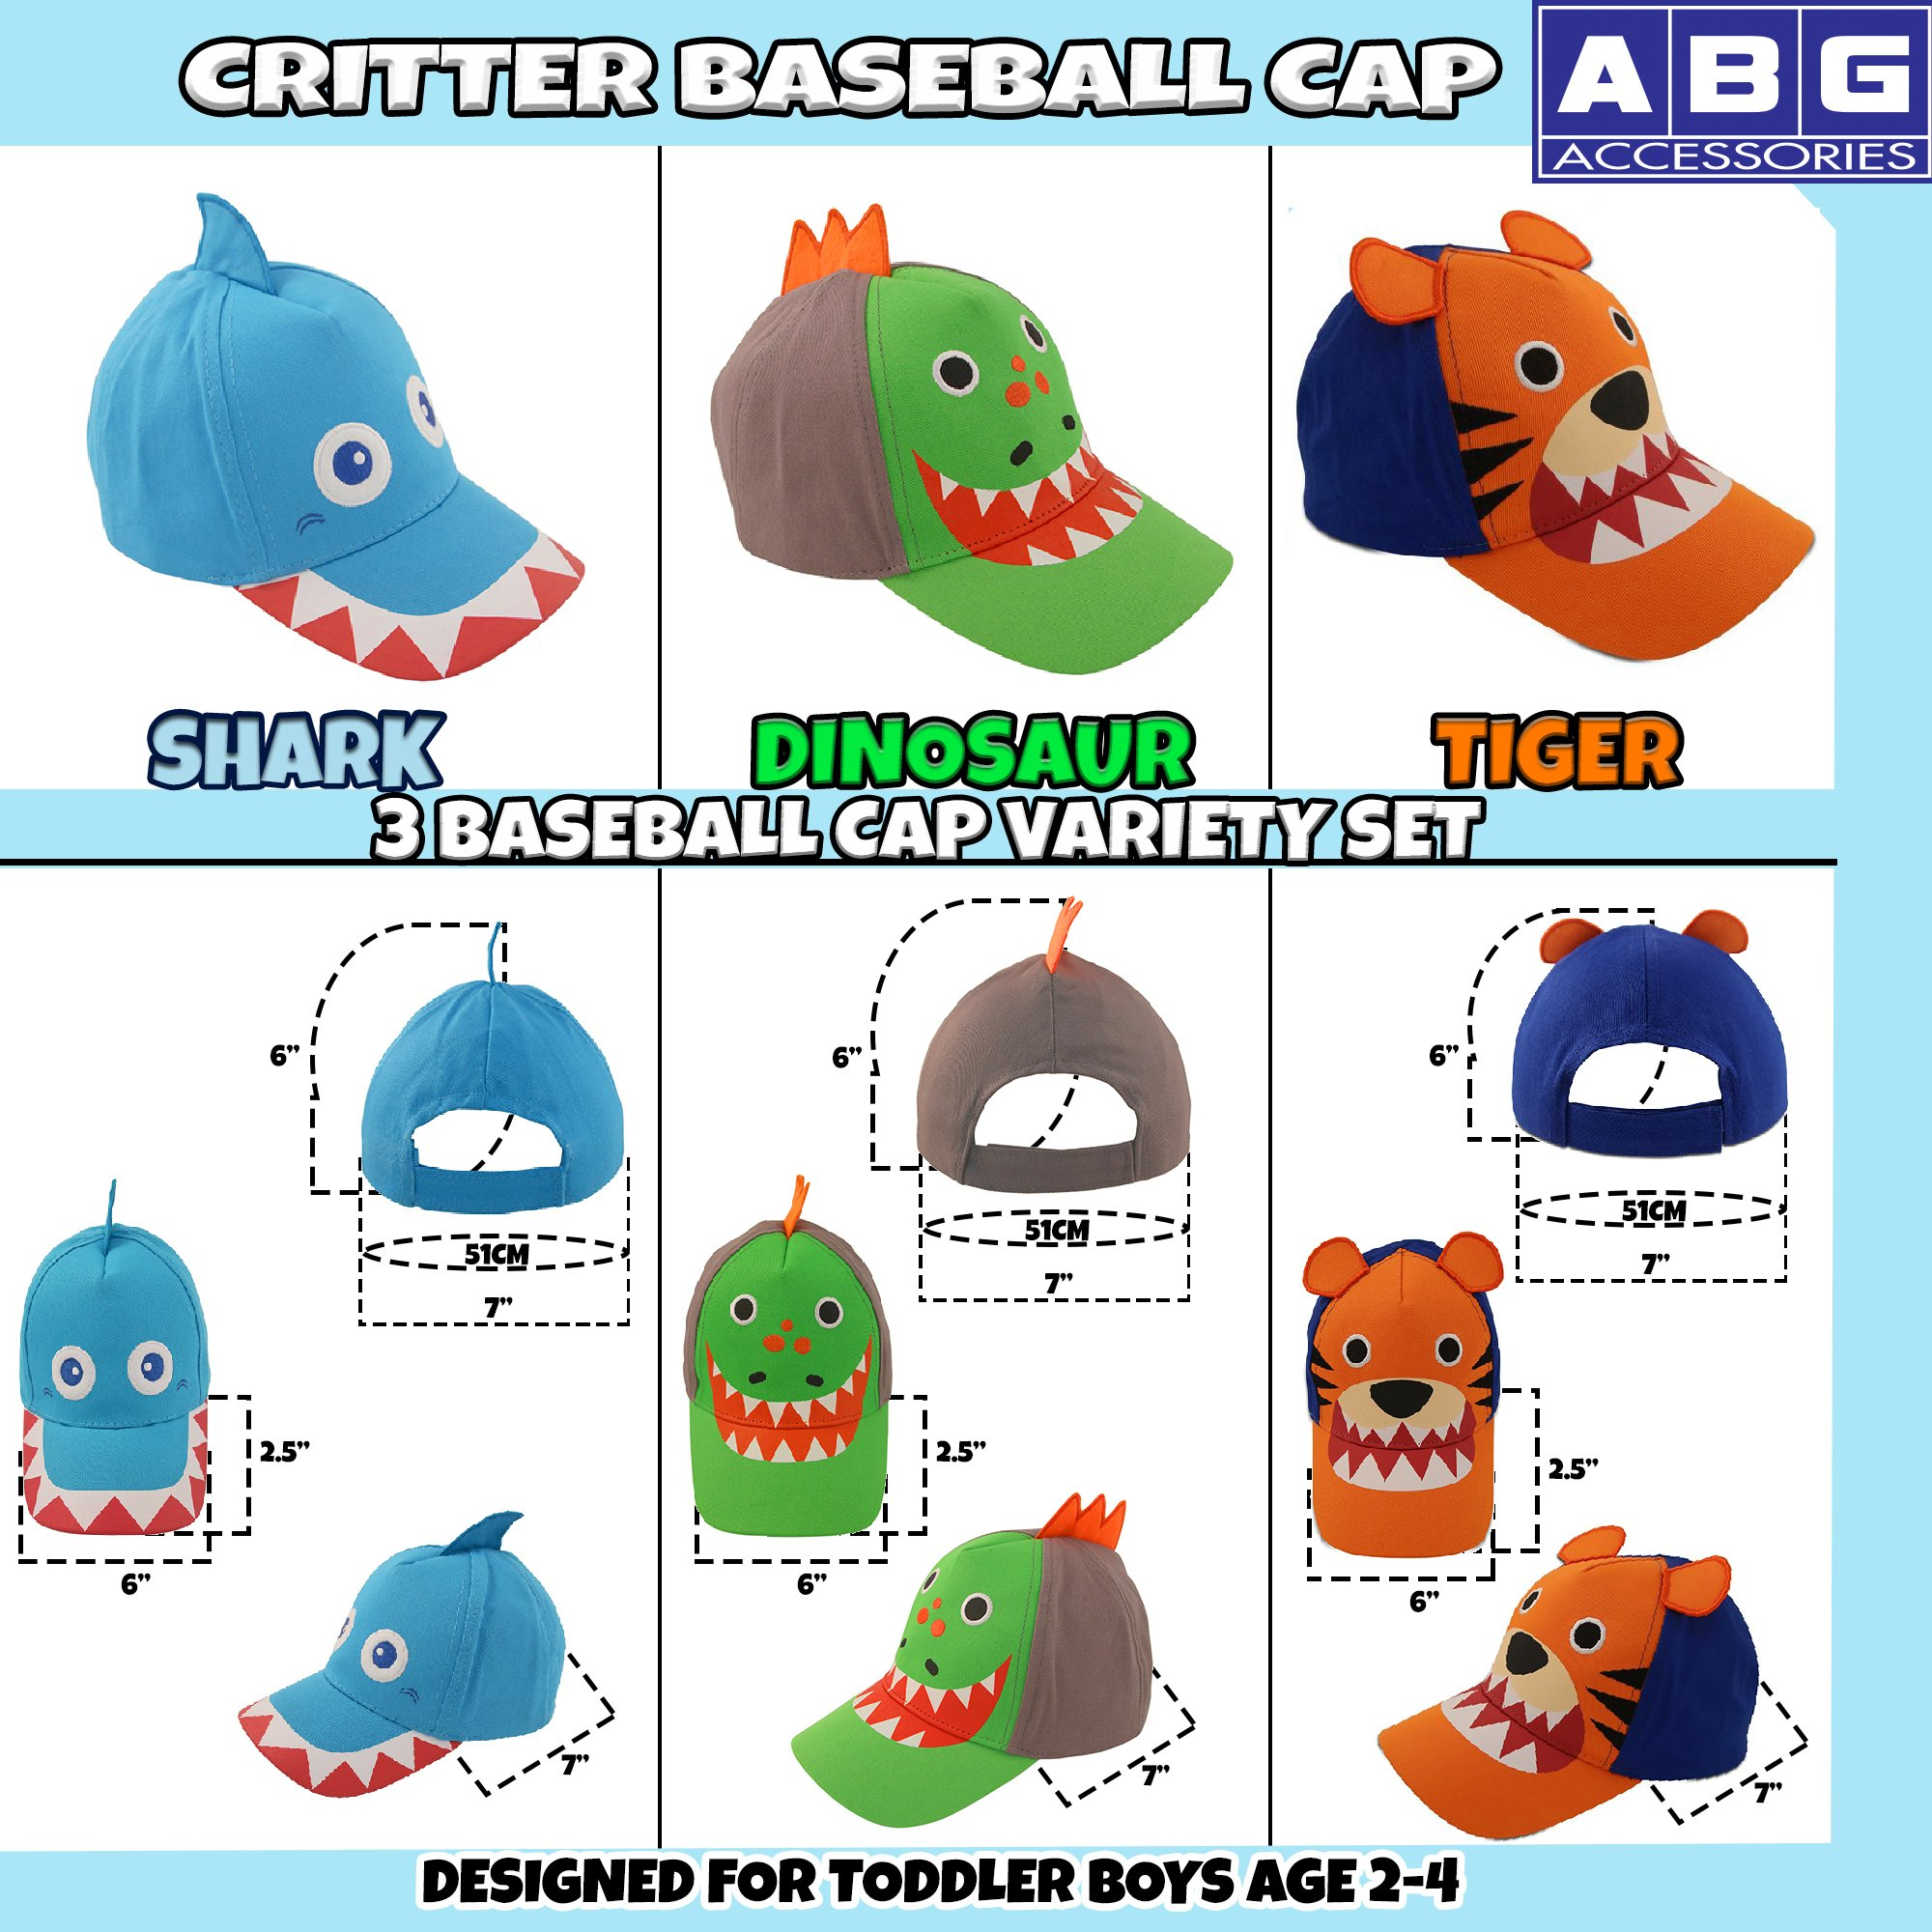 ABG Accessories Toddler Boys Cotton Baseball Cap with Assorted Animal Critter Designs, Age 2-4 (3 Piece Variety Design Pack) by ABG Accessories (Image #3)